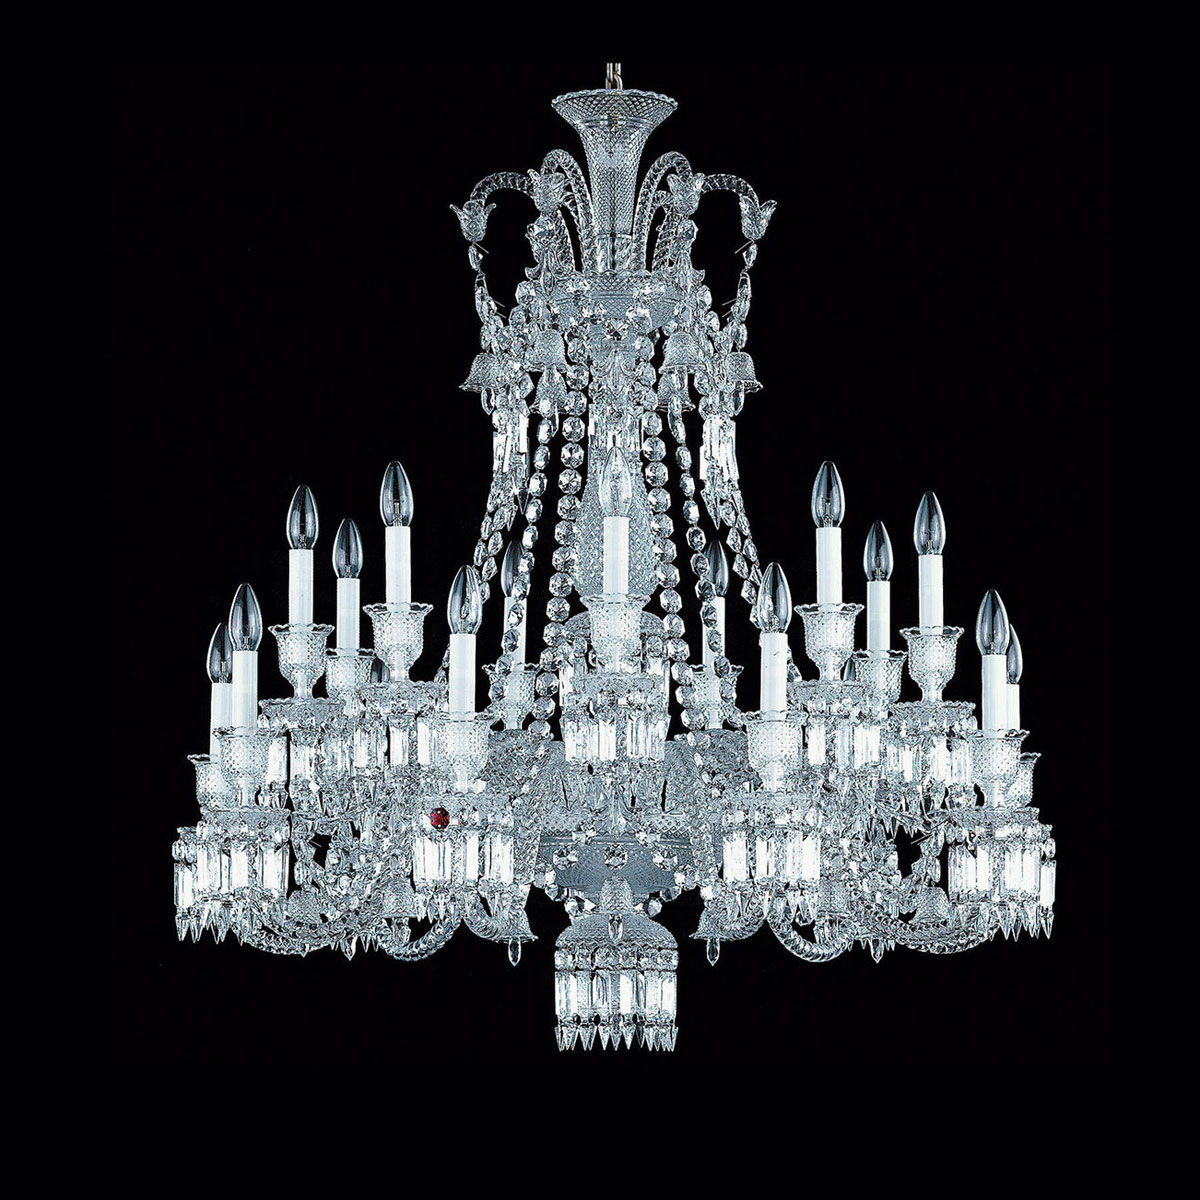 Baccarat Crystal Zenith Chandelier, 18 Light